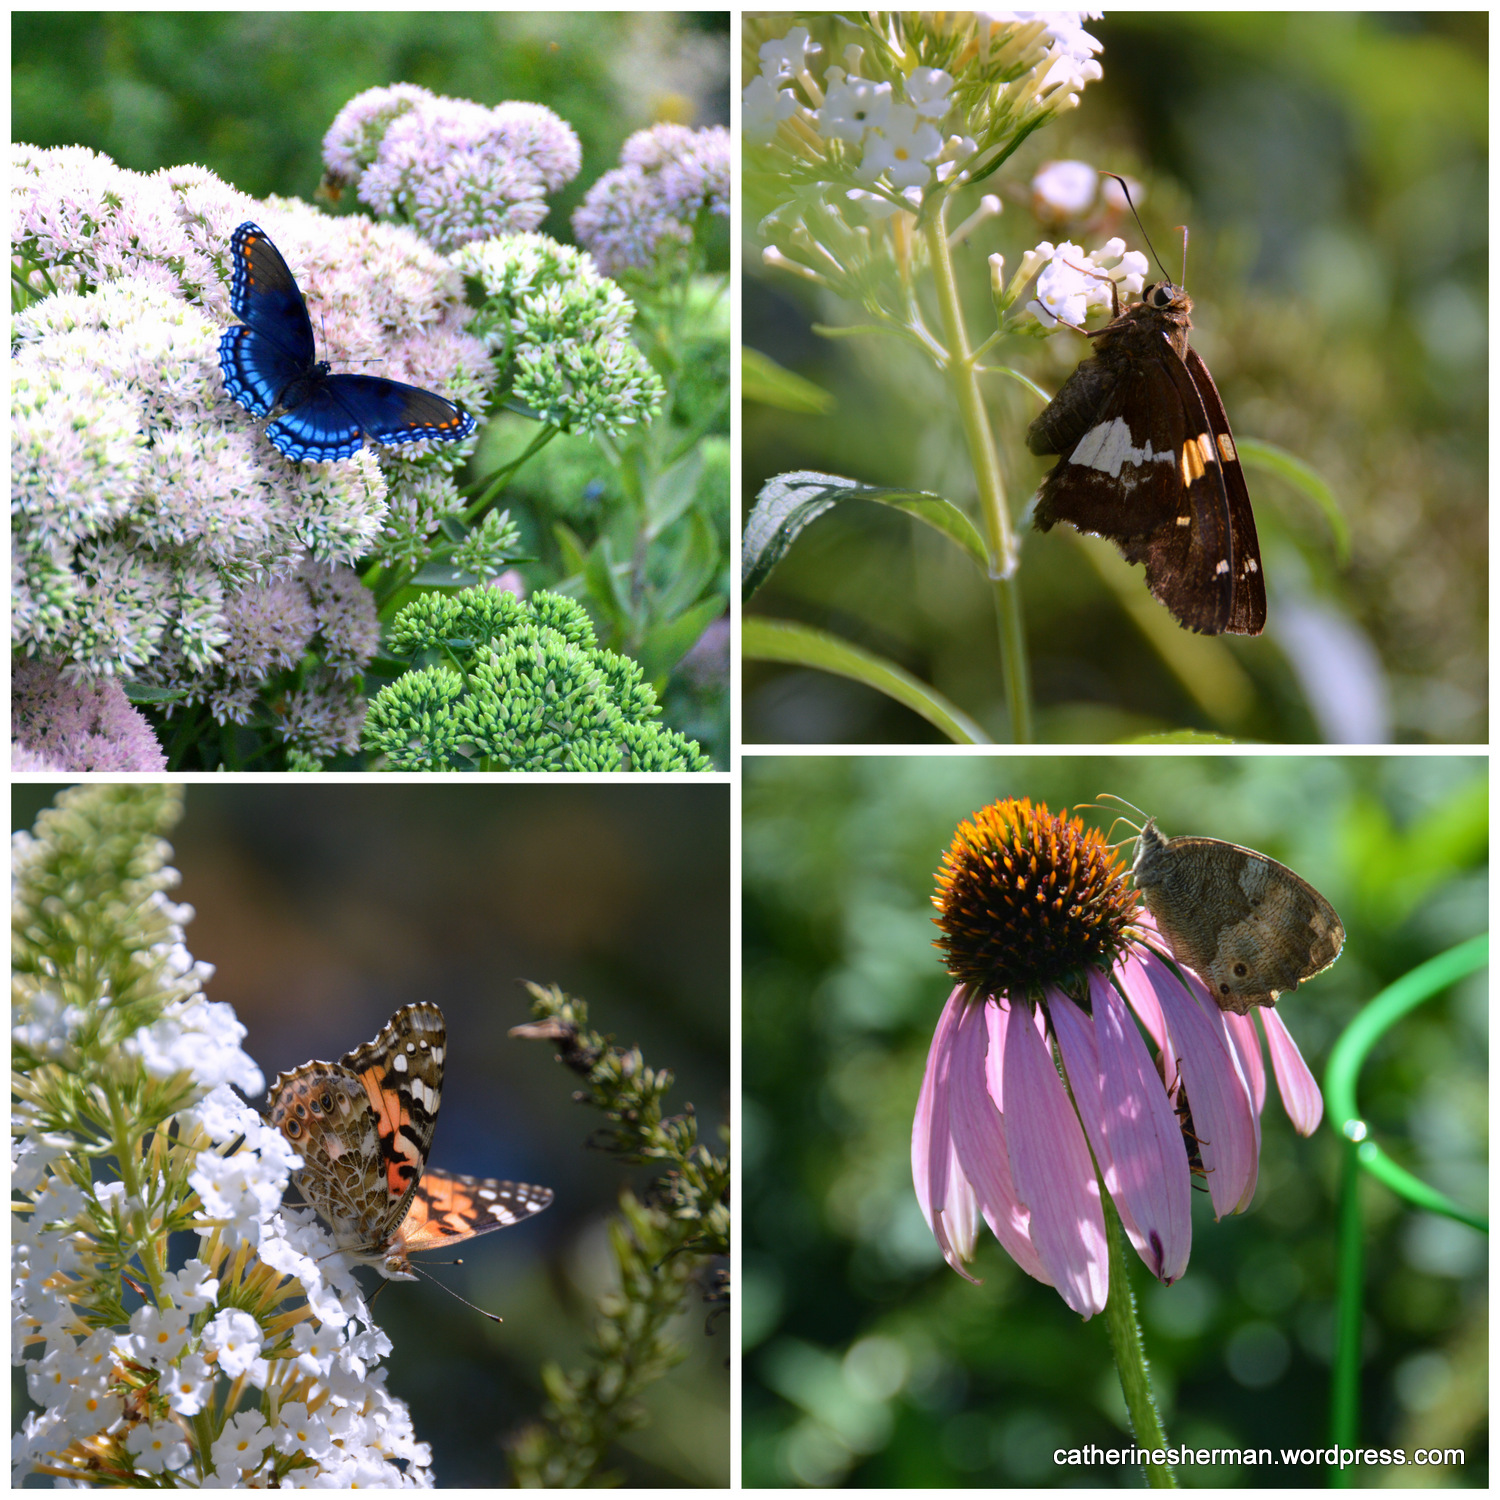 In The Upper Left Is A Red Spotted Purple Butterfly. The Lower Left Is